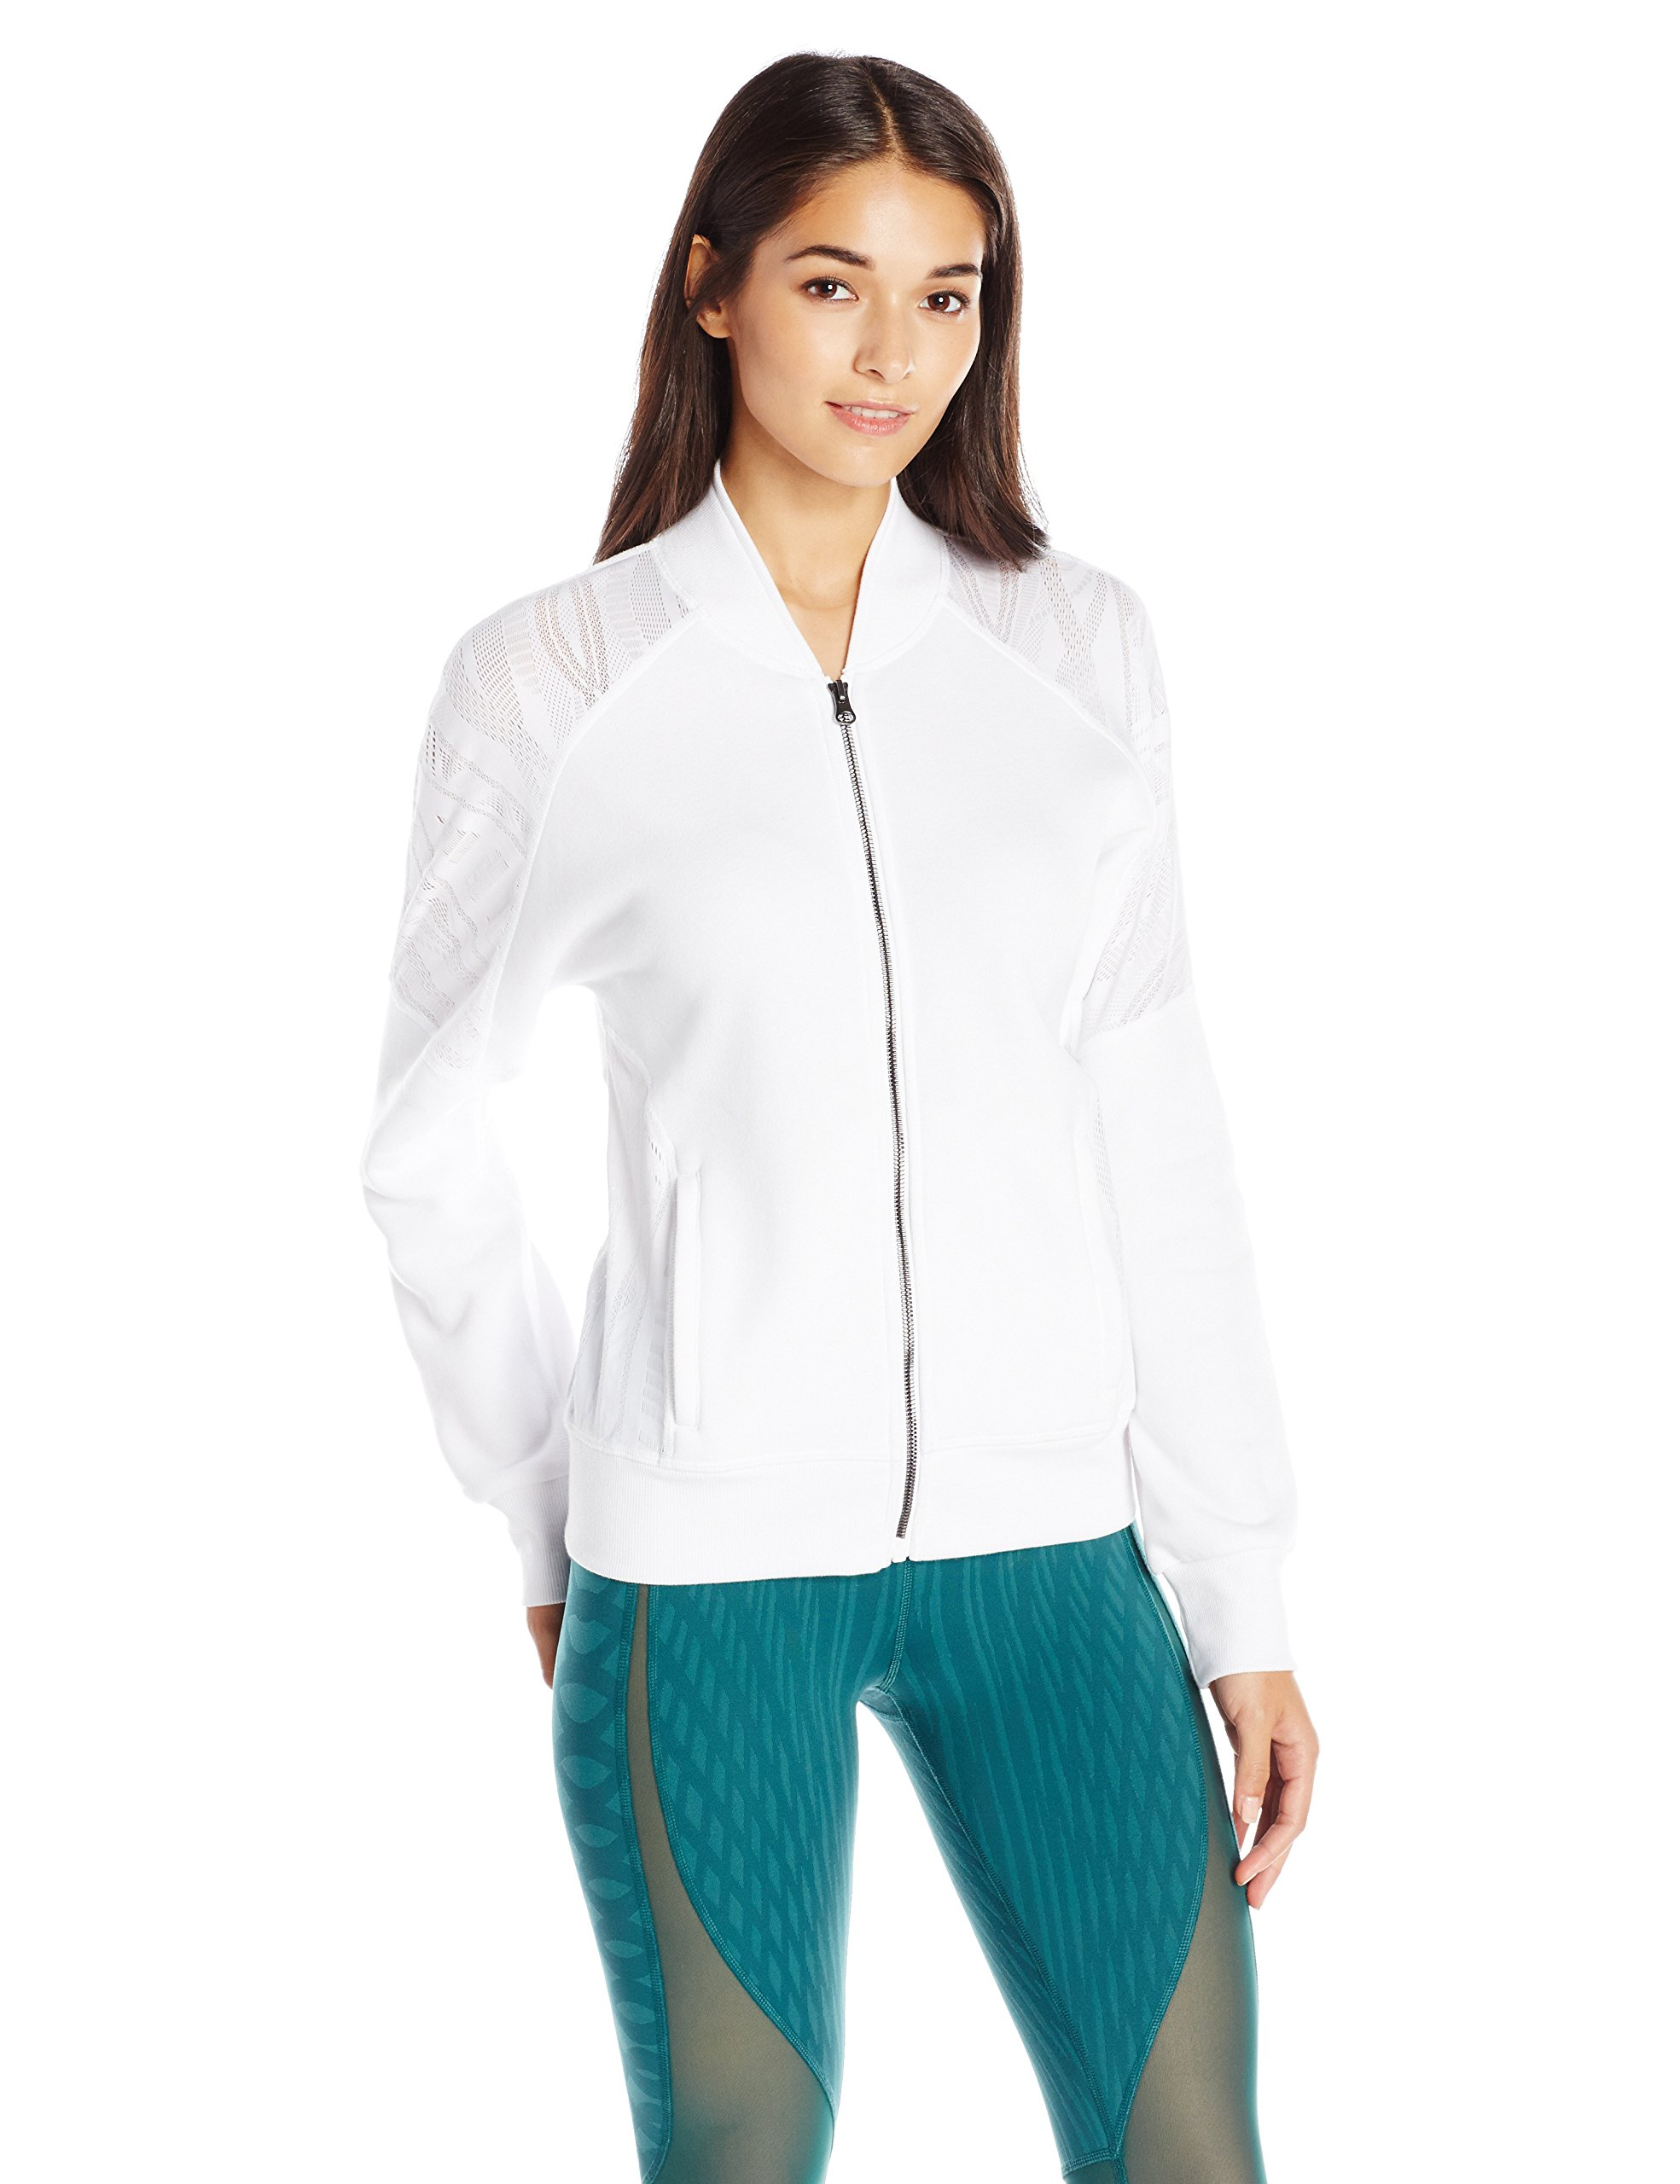 Alo Yoga Women's Tempt Jacket, White, Large